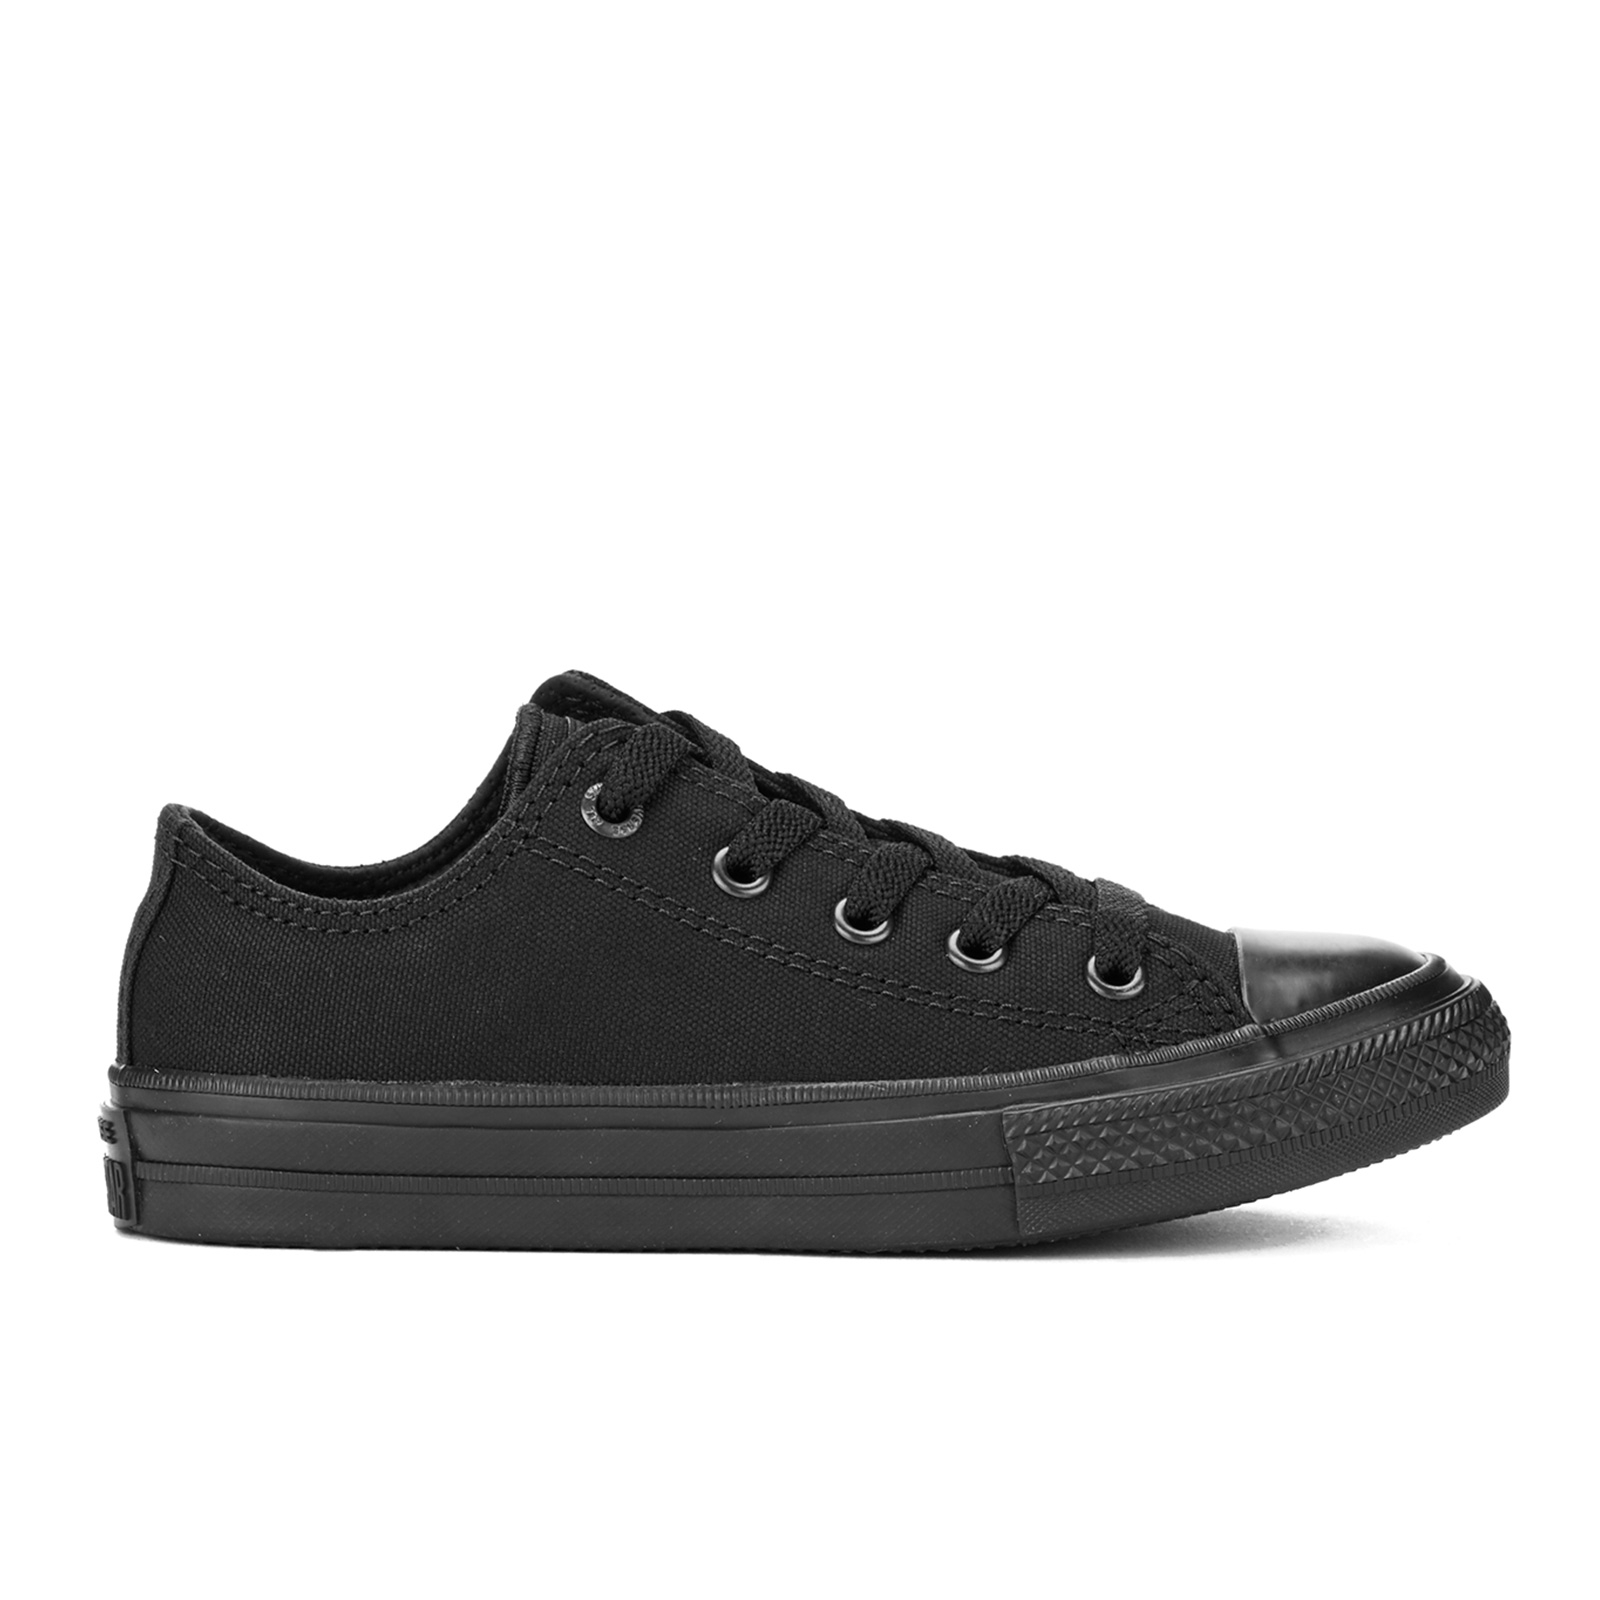 Converse Kids Chuck Taylor All Star II Tencel Canvas Ox Trainers Black Monochrome